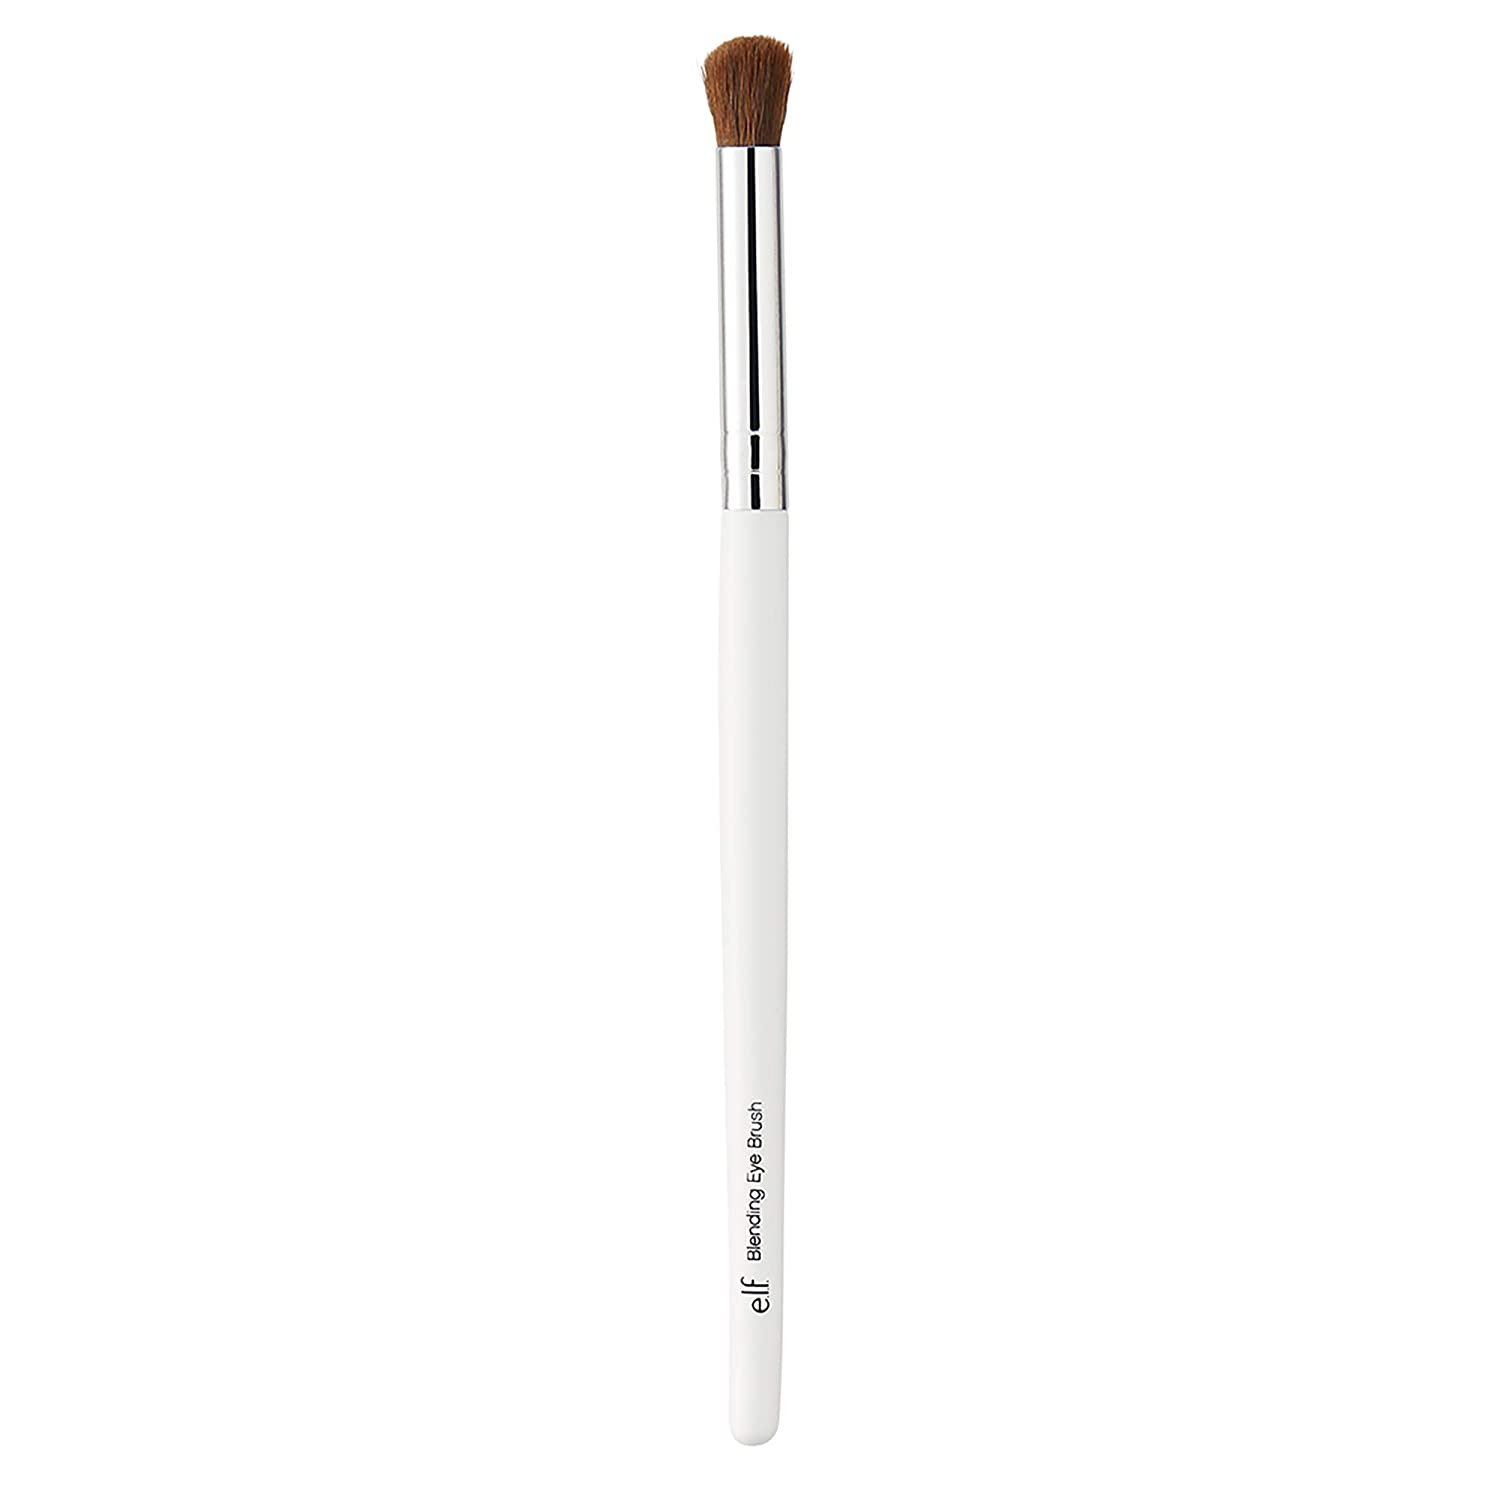 e.l.f. Blending Eye Brush for Precision Application, Synthetic: Beauty